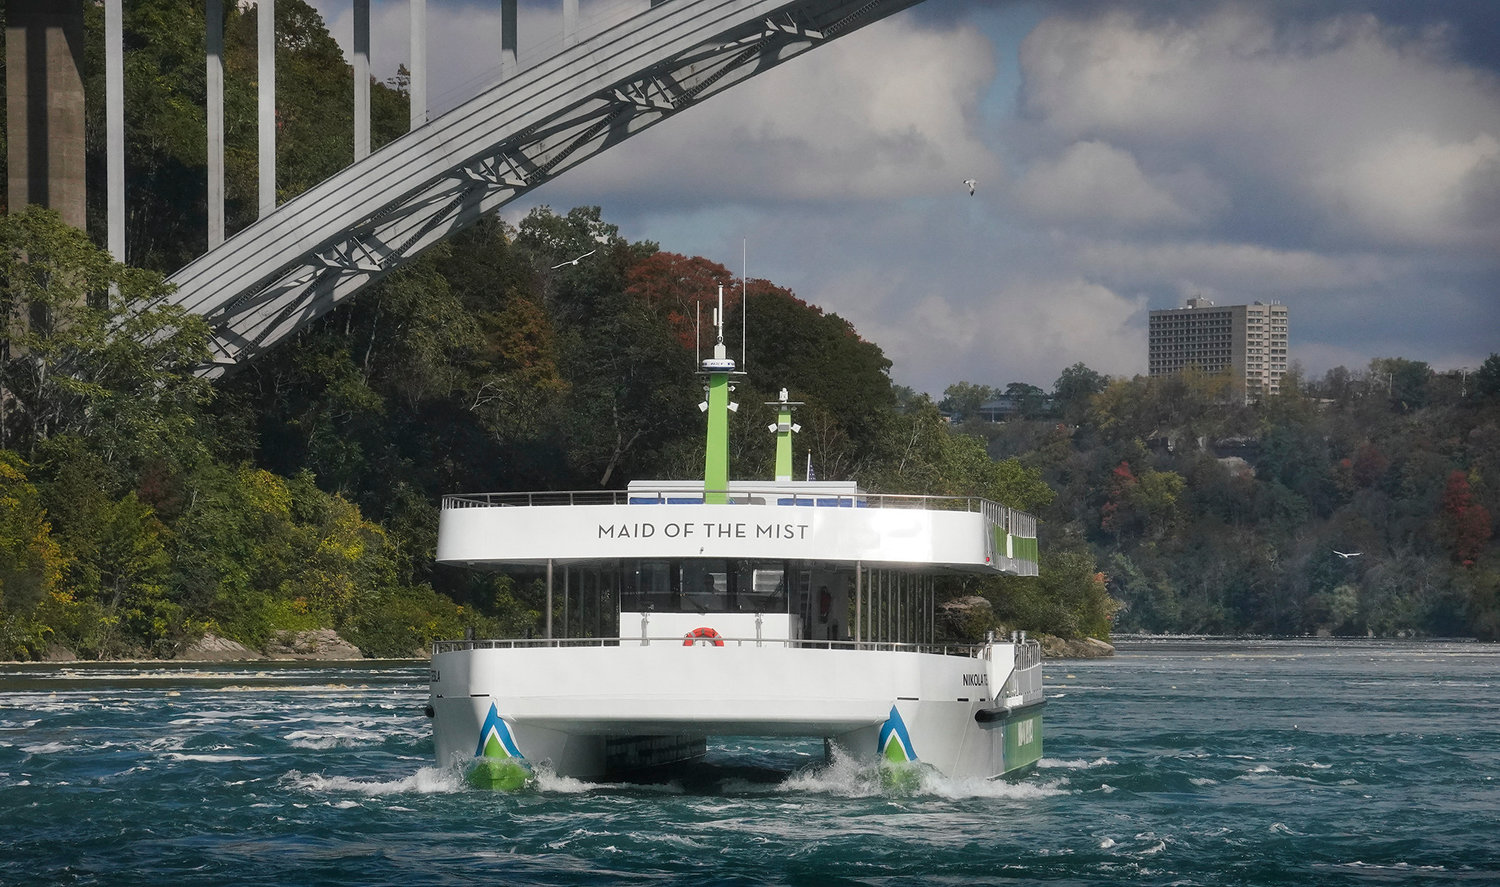 IT'S ELECTRIC — The Maid of the Mist, the iconic boat tour that has navigated the waters below Niagara Falls since 1846, has launched the first two new all-electric, zero-emission passenger vessels in the U.S., according to an announcement earlier this week by New York state officials.